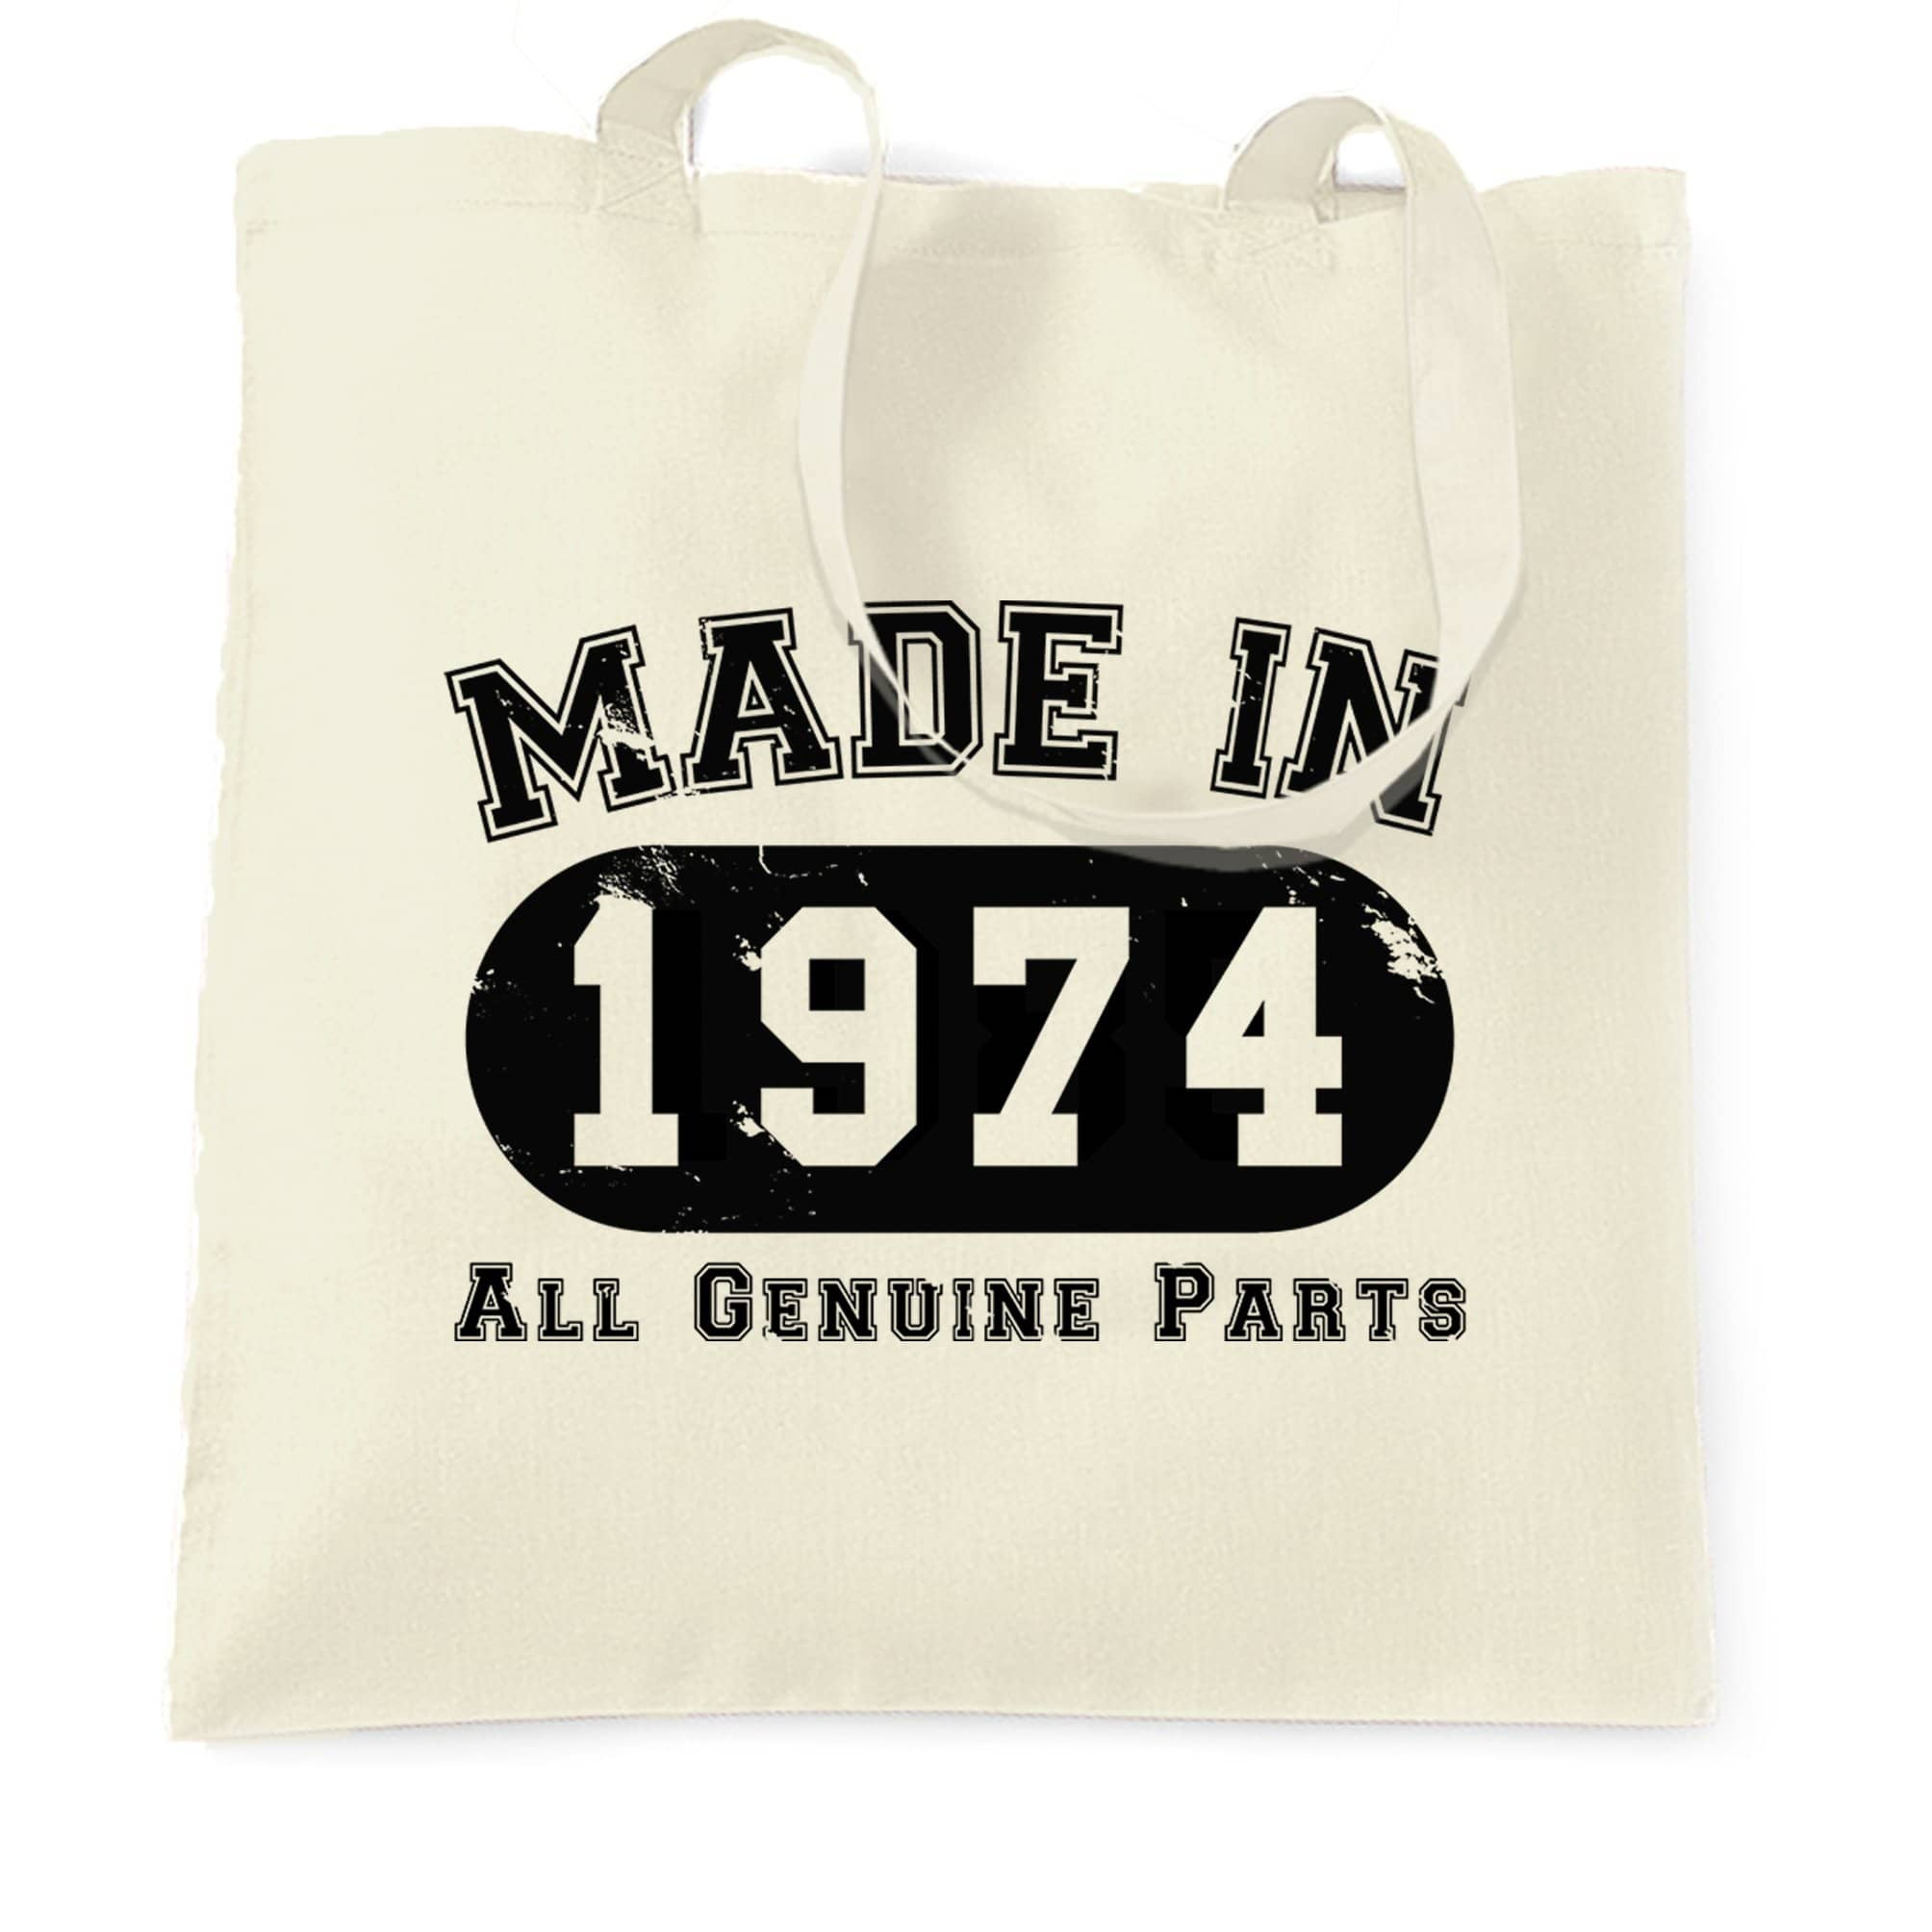 Birthday Tote Bag Made in 1974 All Genuine Parts